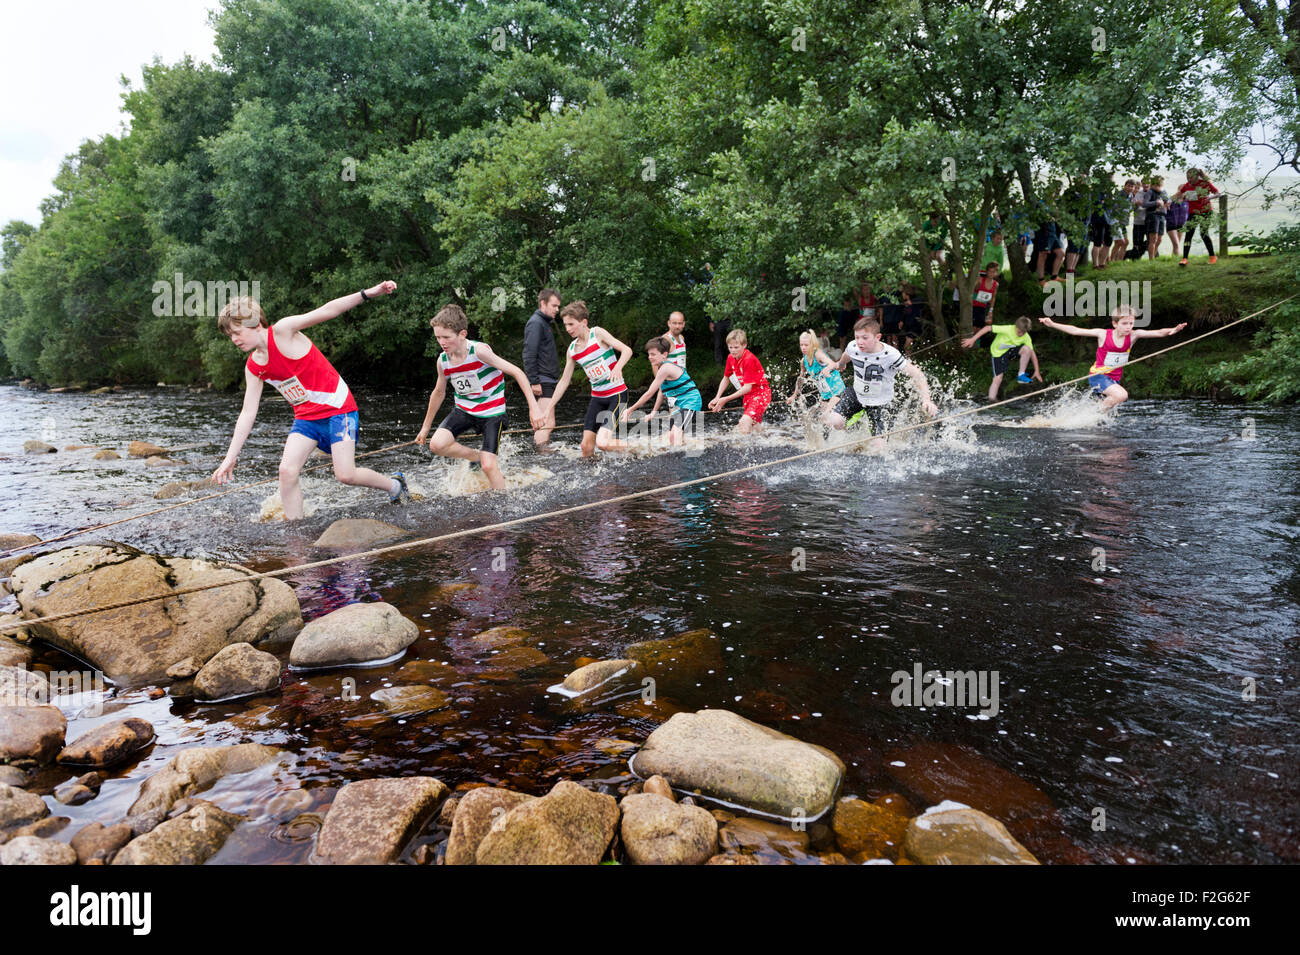 Fording a stream on the the junior fell race, Muker Show, North Yorkshire, 2015 - Stock Image